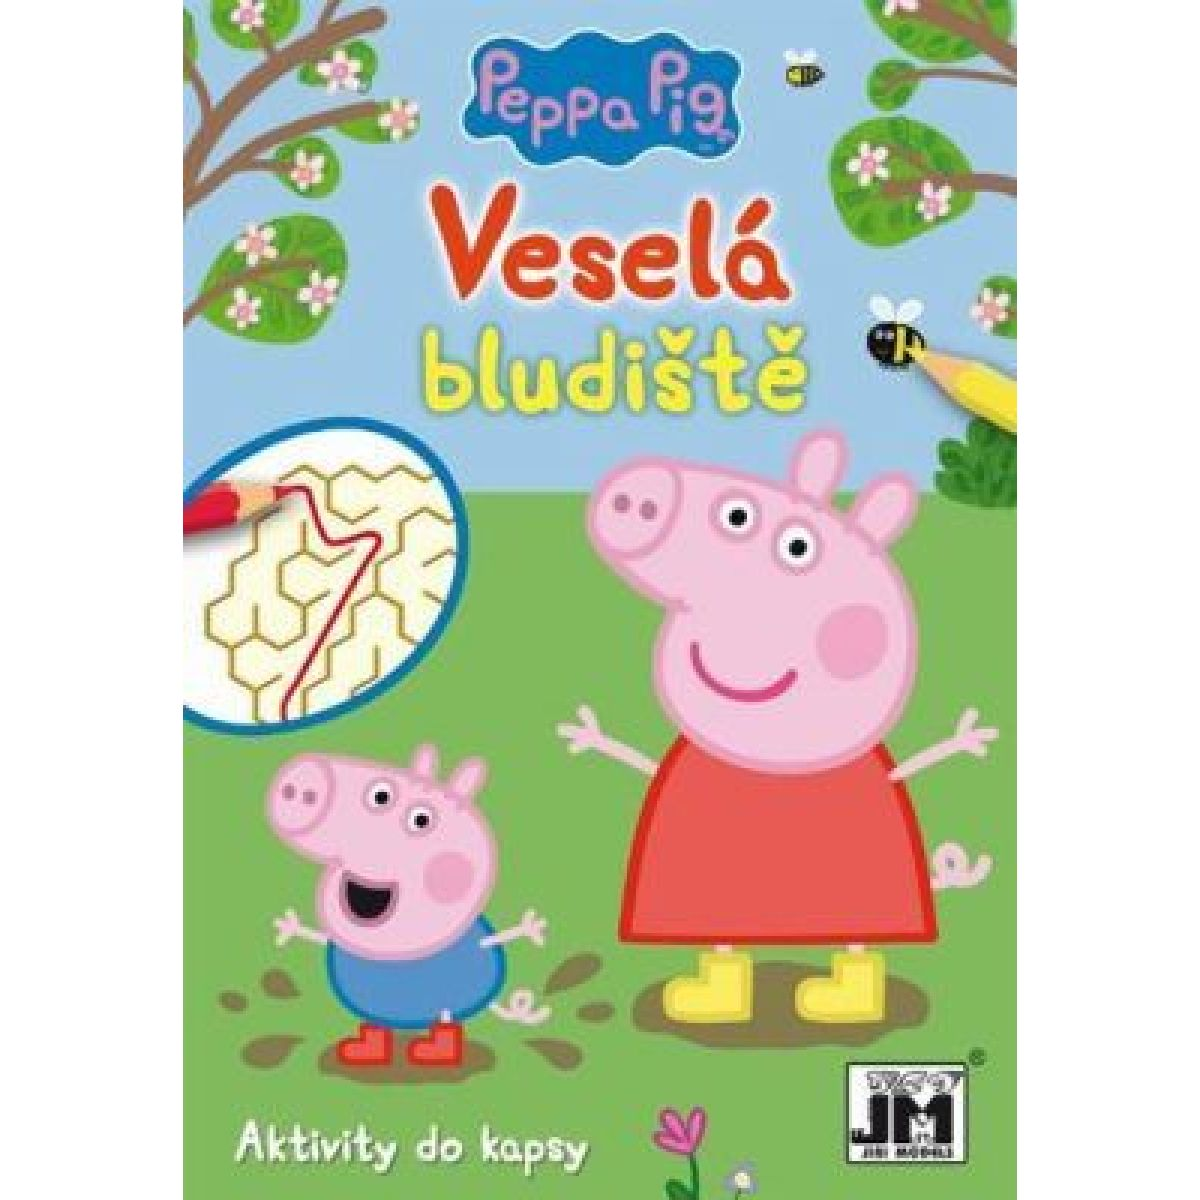 Jiri Models Do kapsy Peppa bludiště